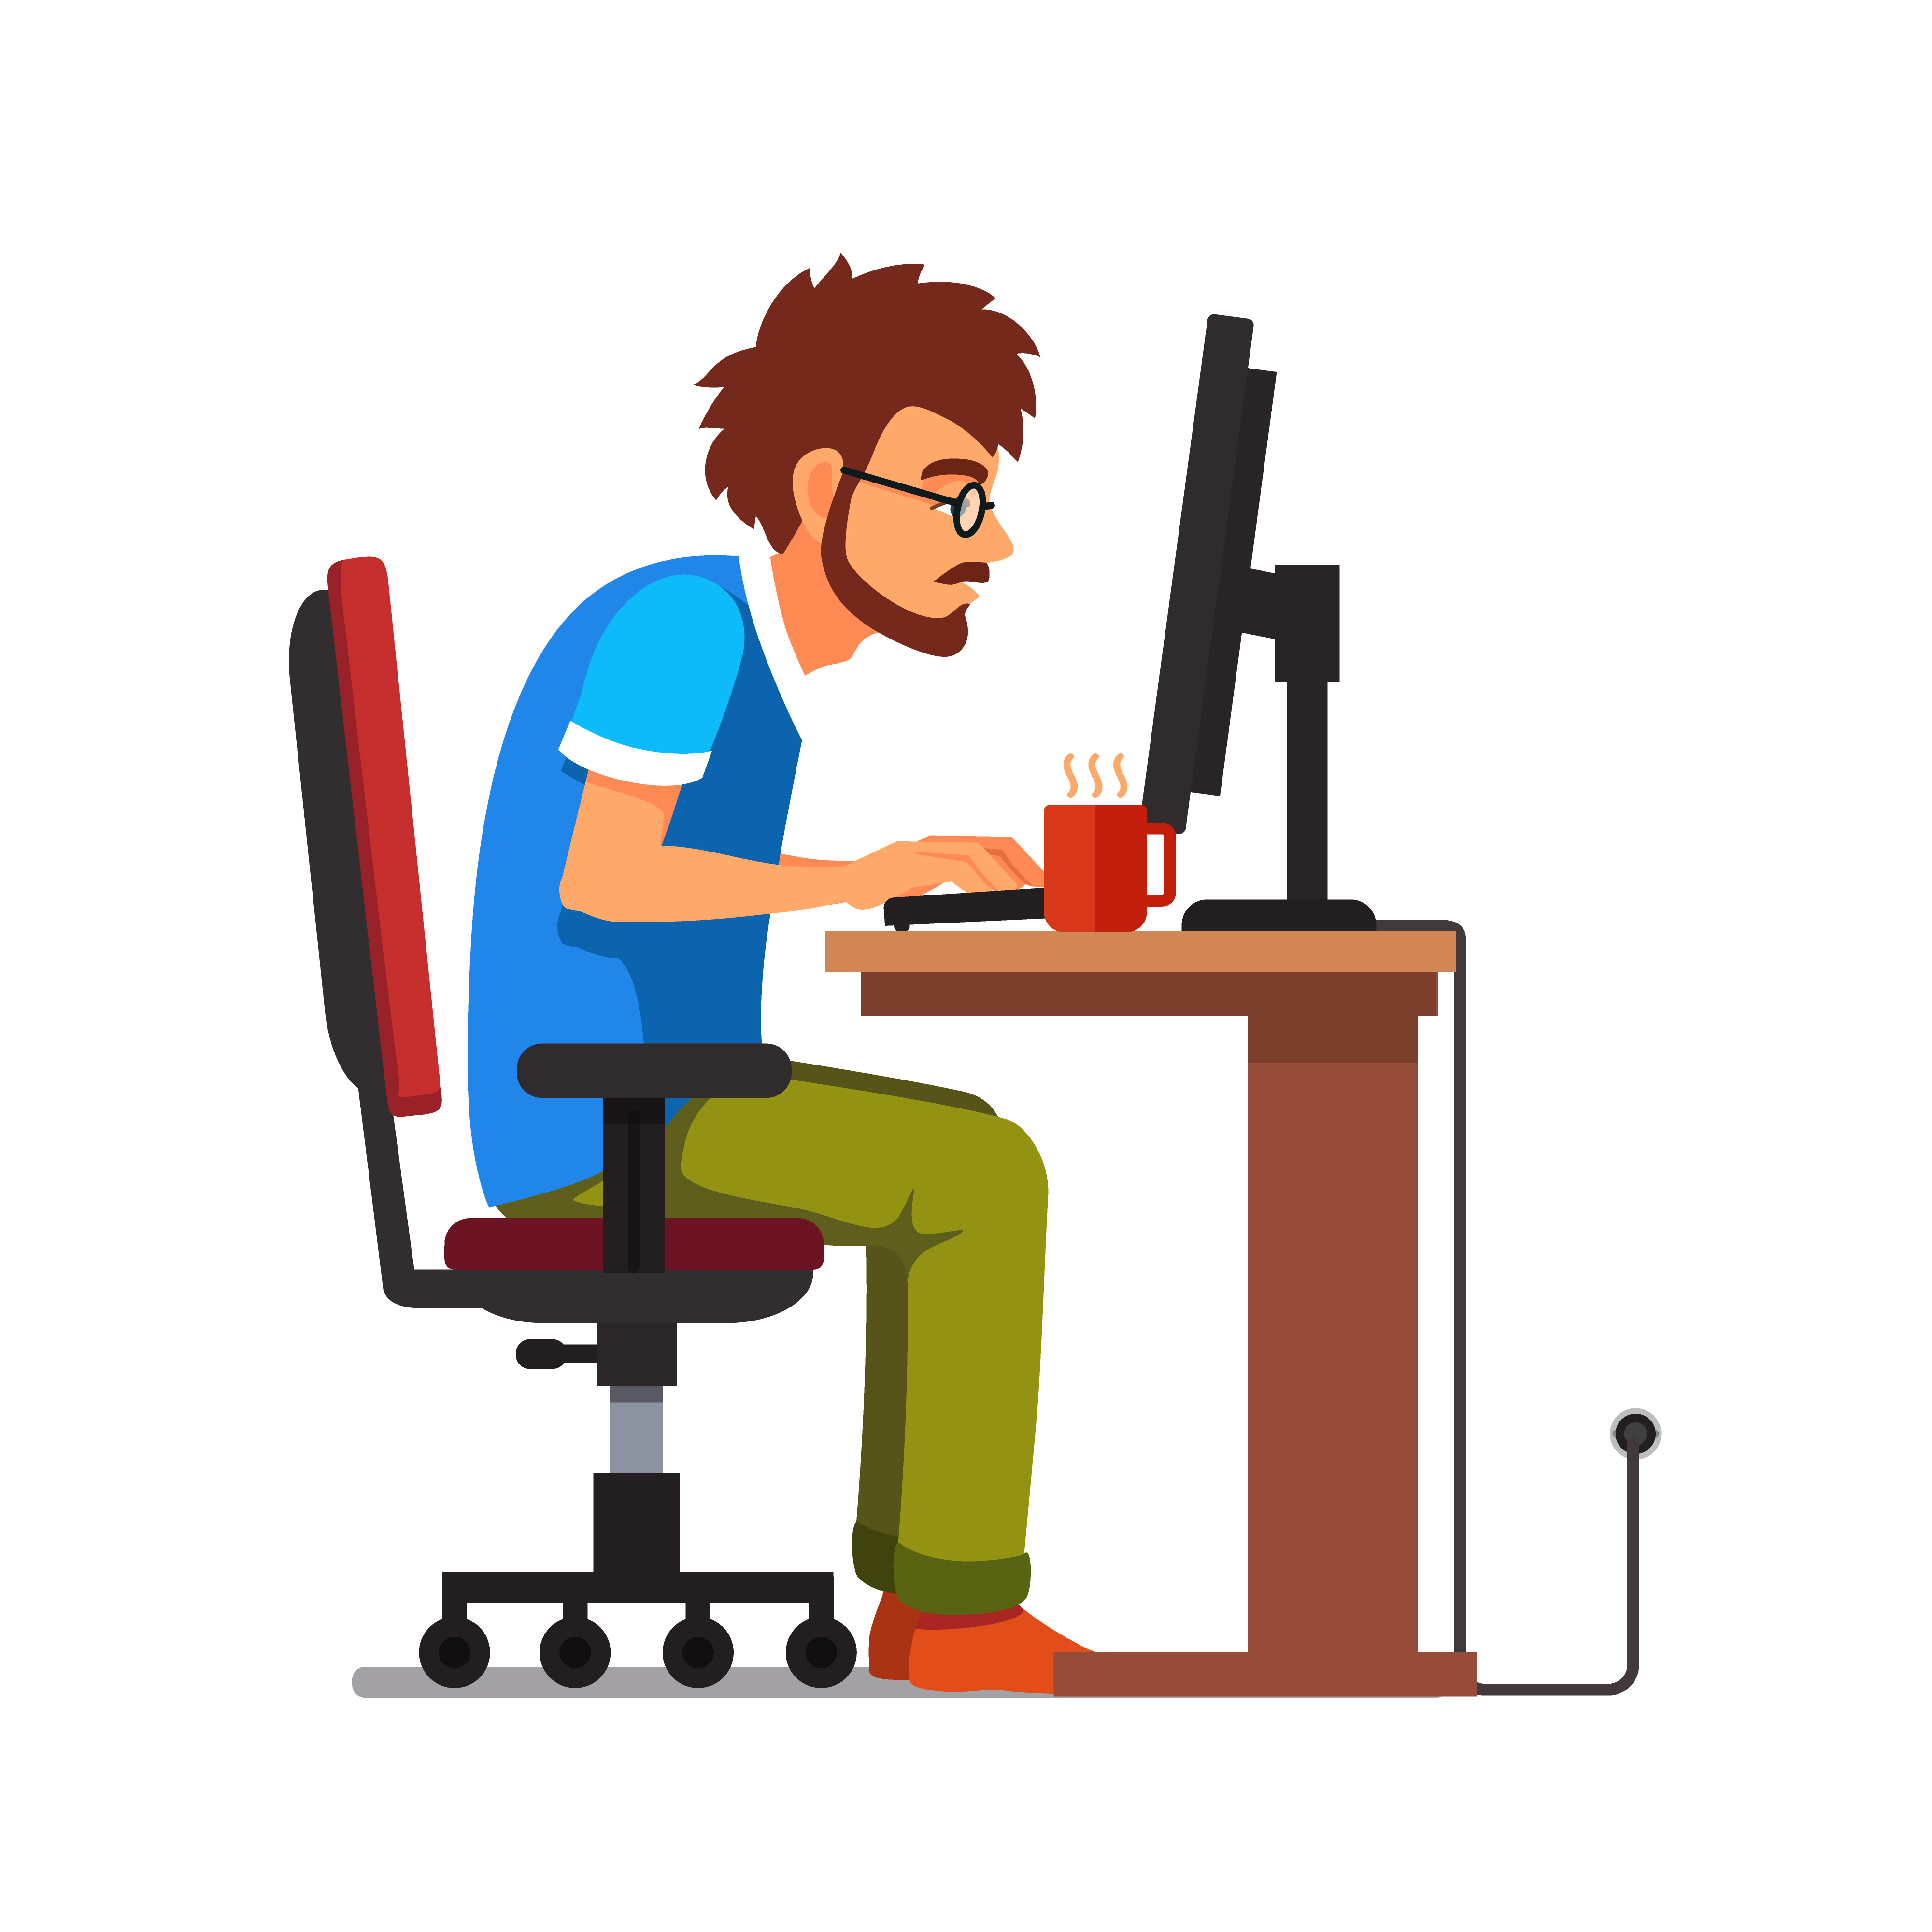 Cartoon style, Man sitting in front of a computer